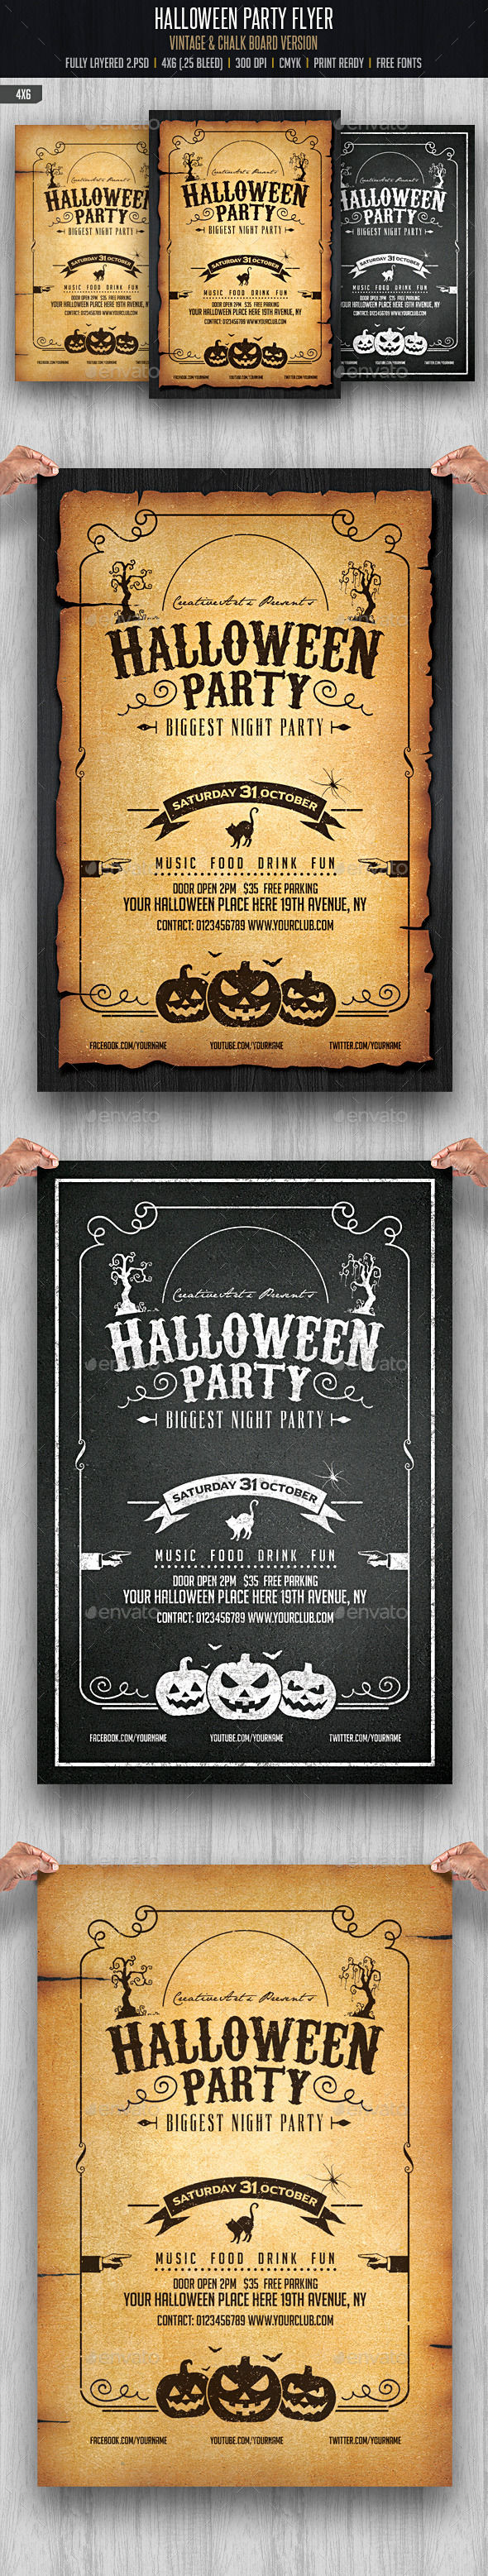 Halloween Party Flyer Template by Creativeartx (Halloween party flyer)